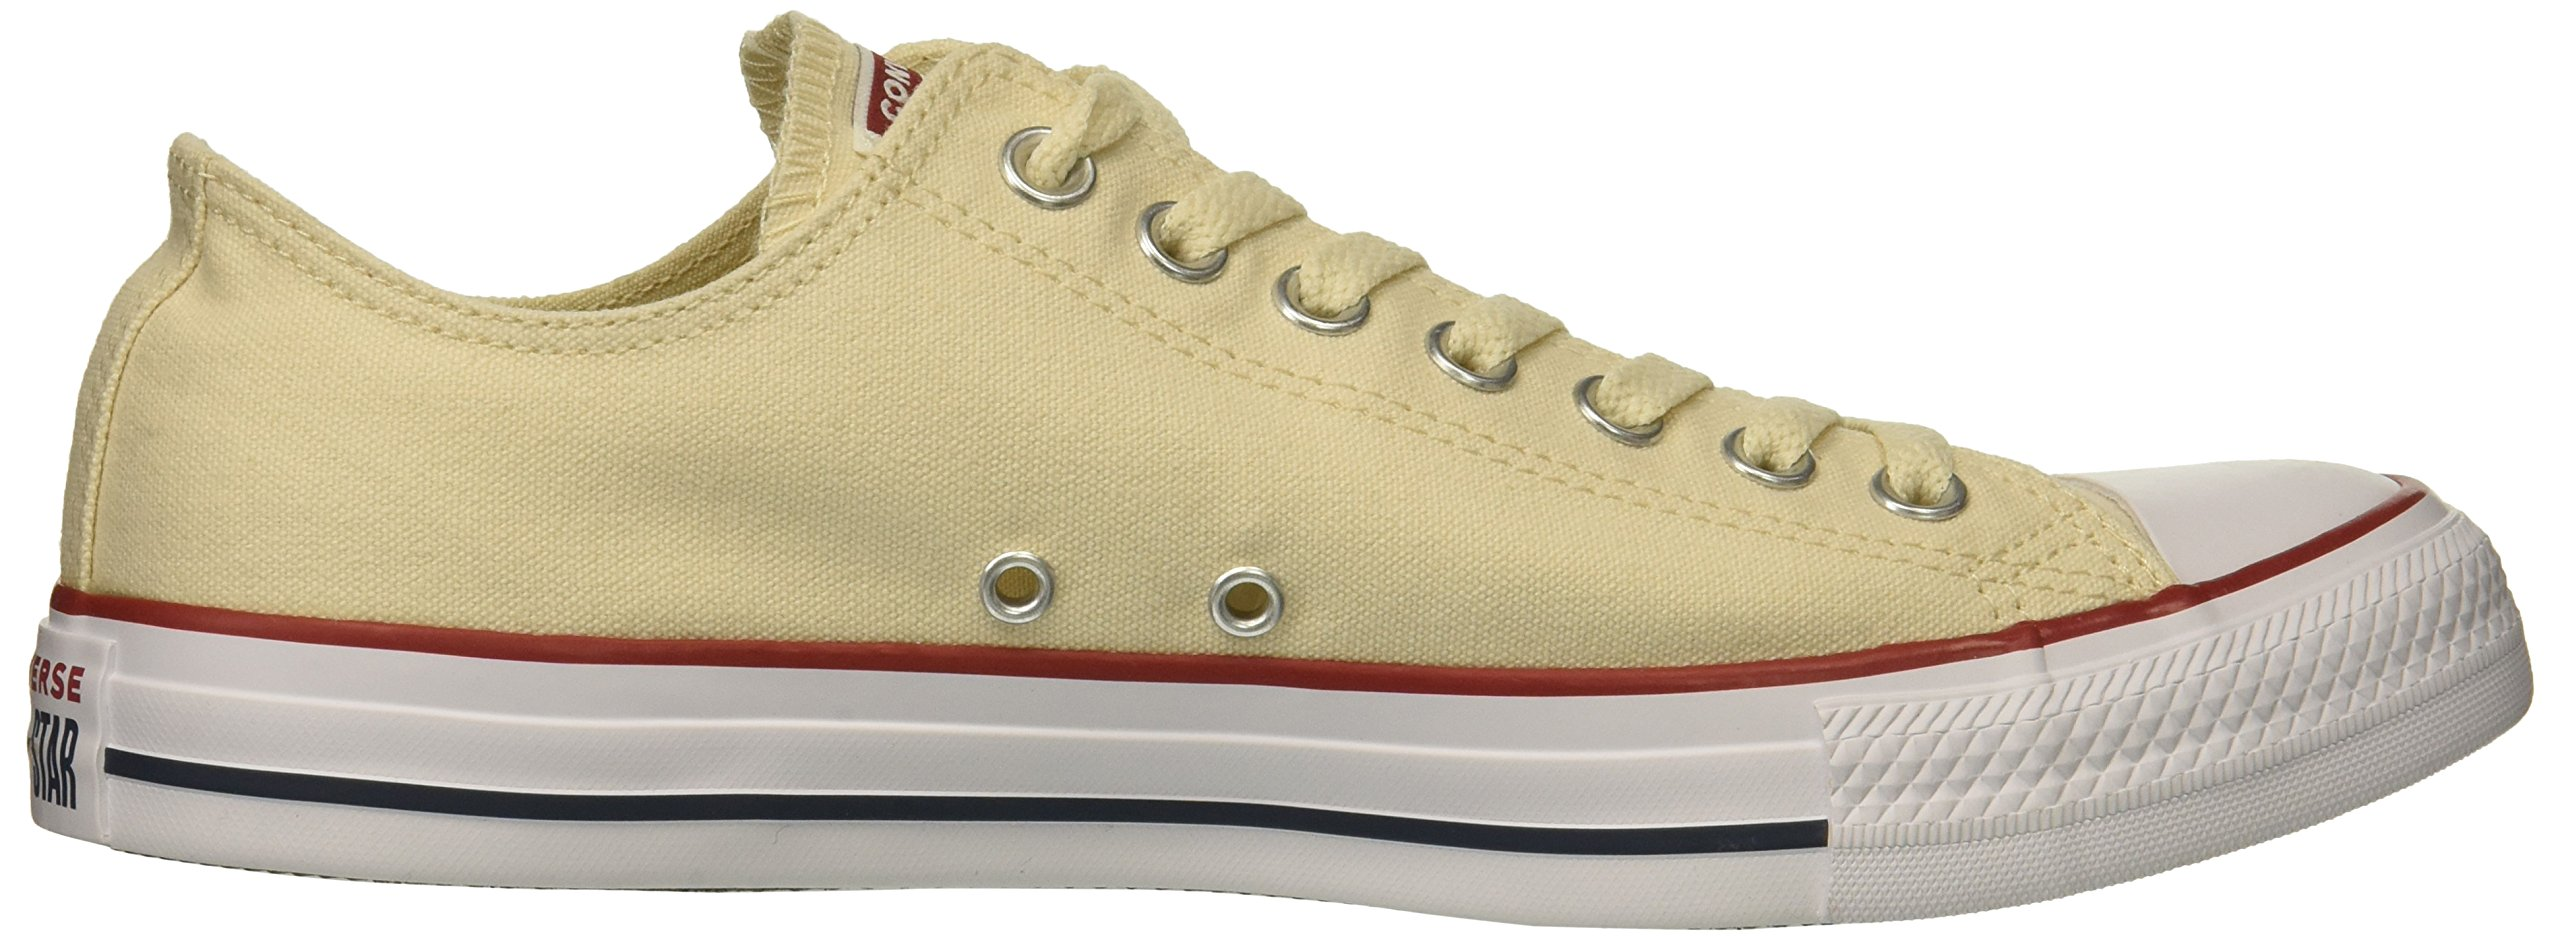 Converse Chuck Taylor All Star Low Top Sneaker, Natural Ivory, 11 M US by Converse (Image #6)